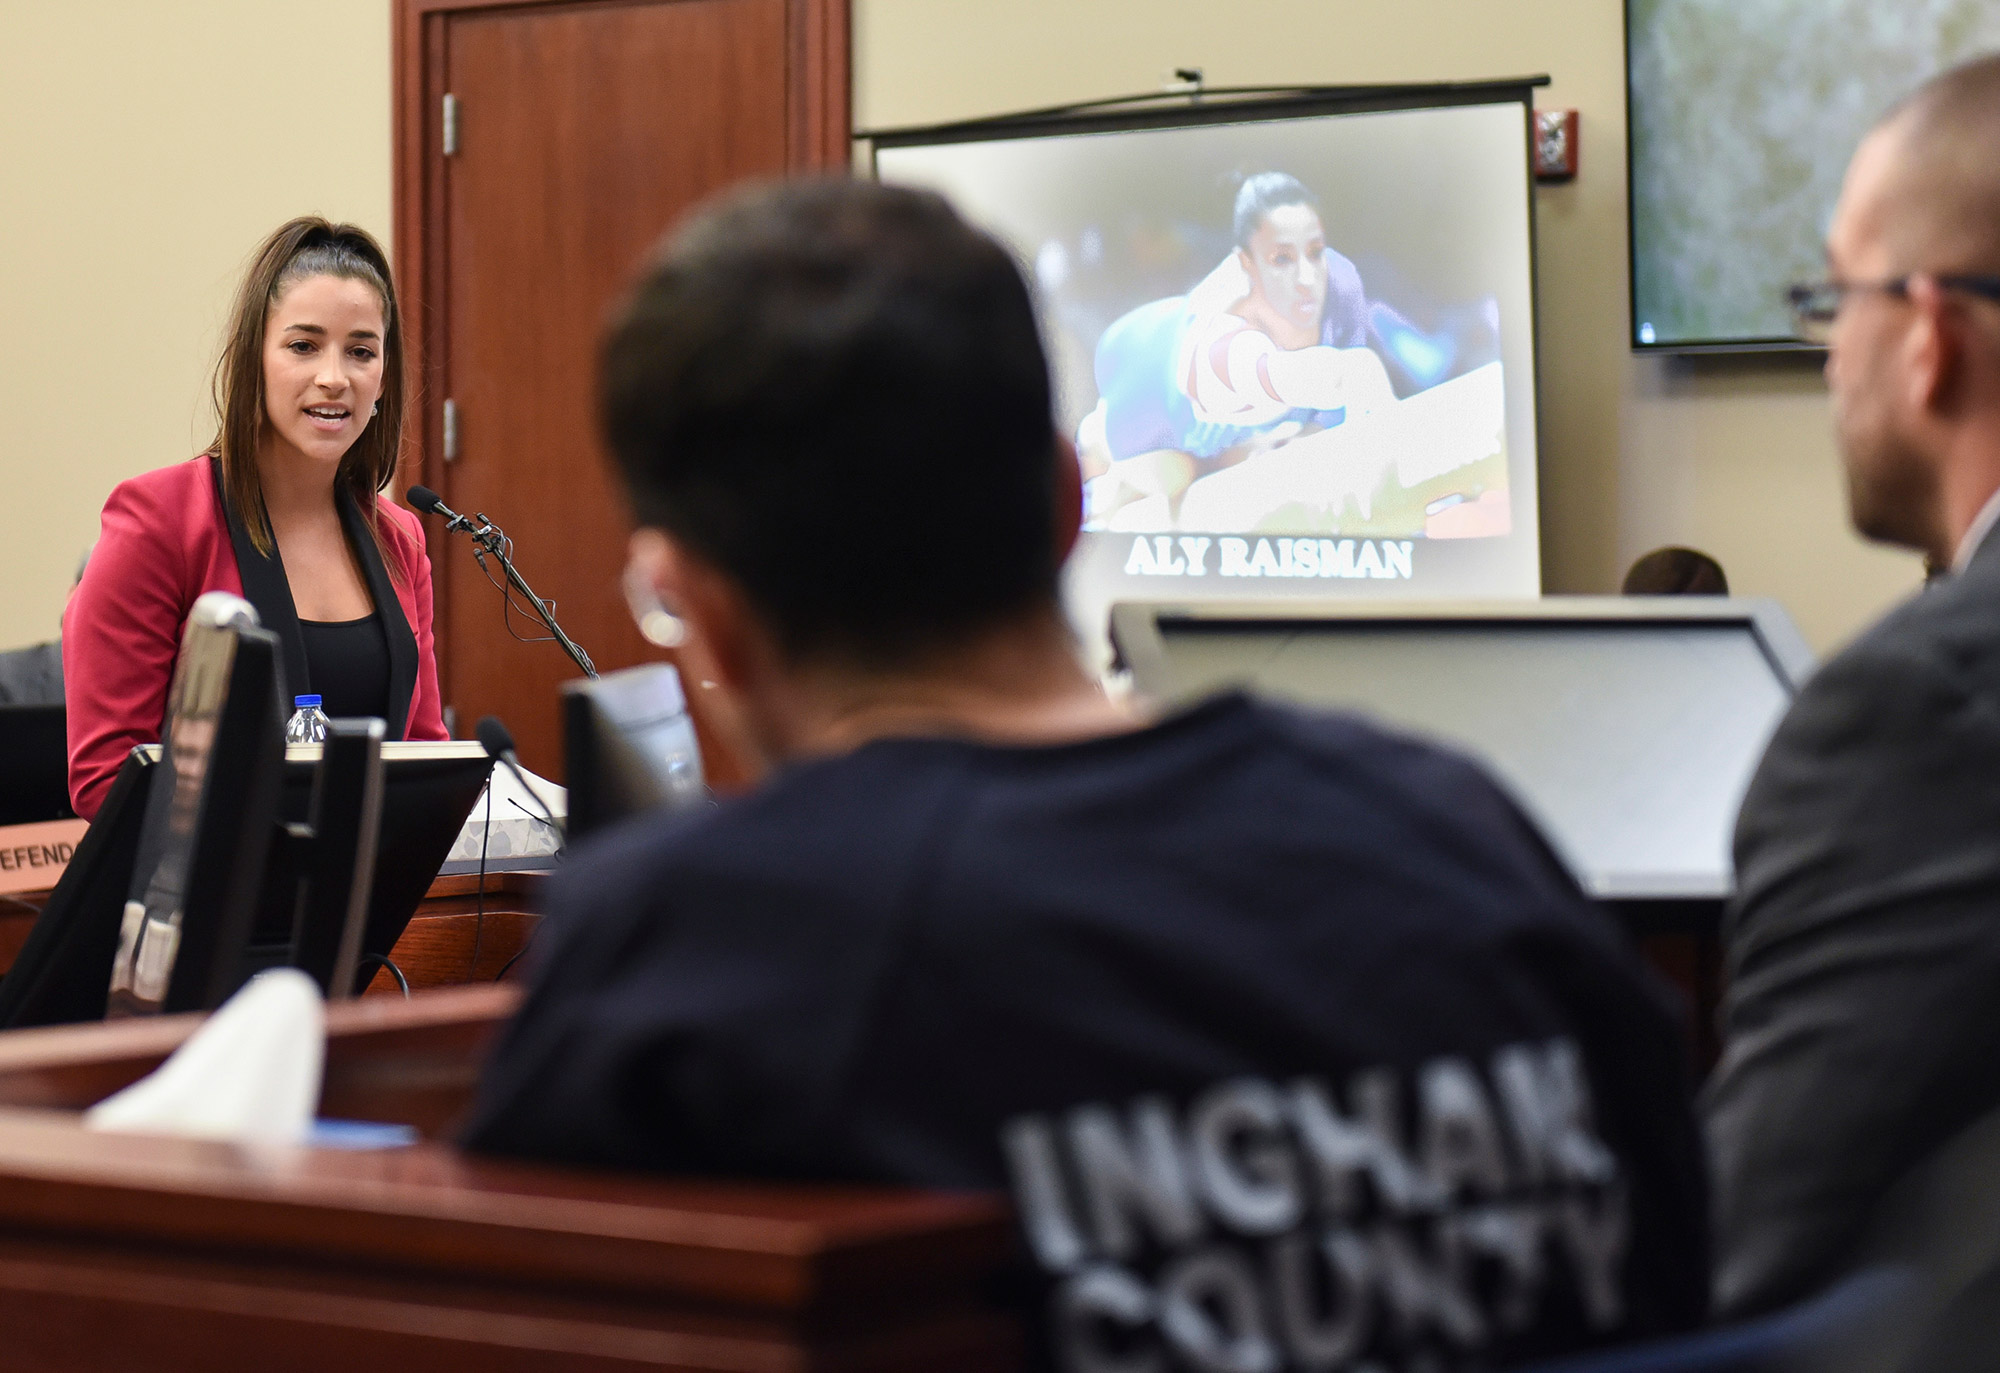 News: Larry Nassar Sentencing Hearing